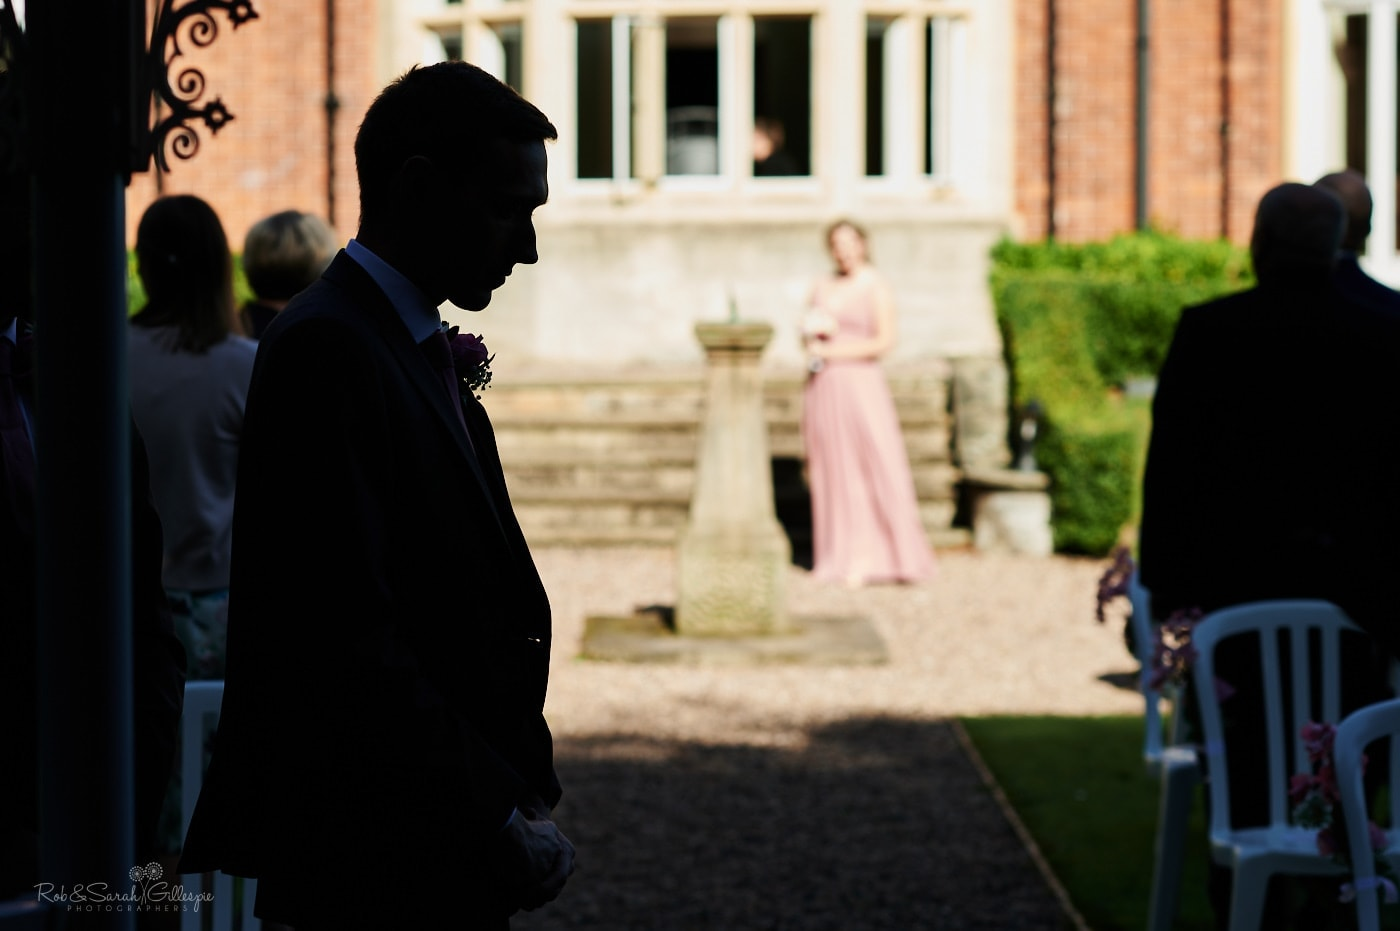 Groom in silhouette as he waits for outdoor wedding ceremony to start at Pendrell Hall